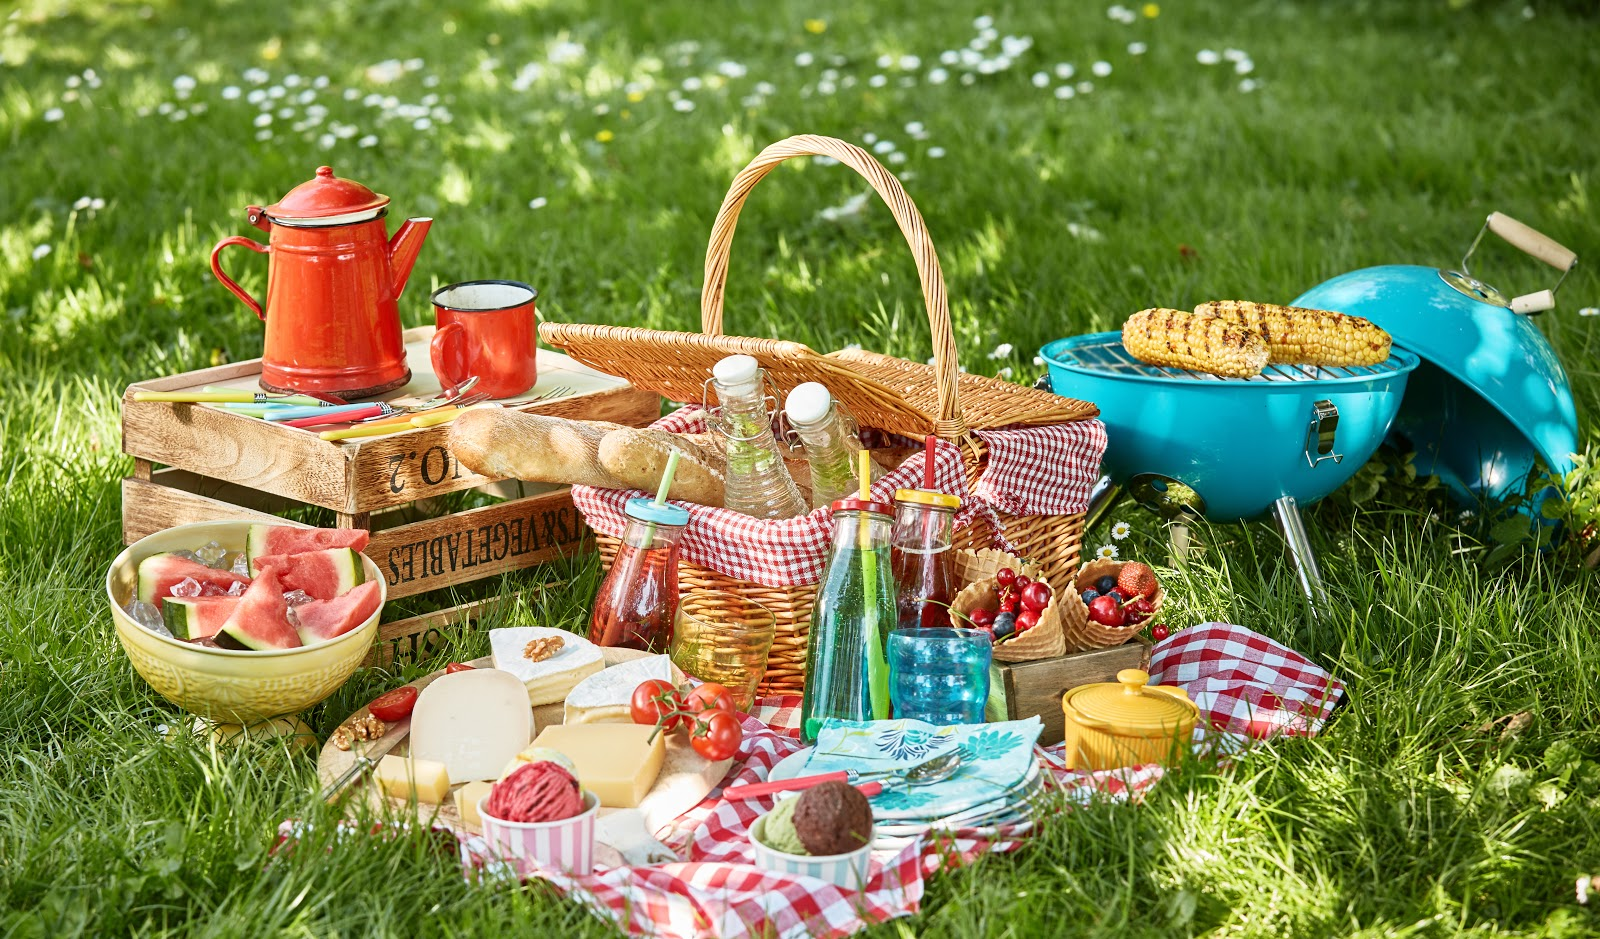 An array of picnic food on the grass